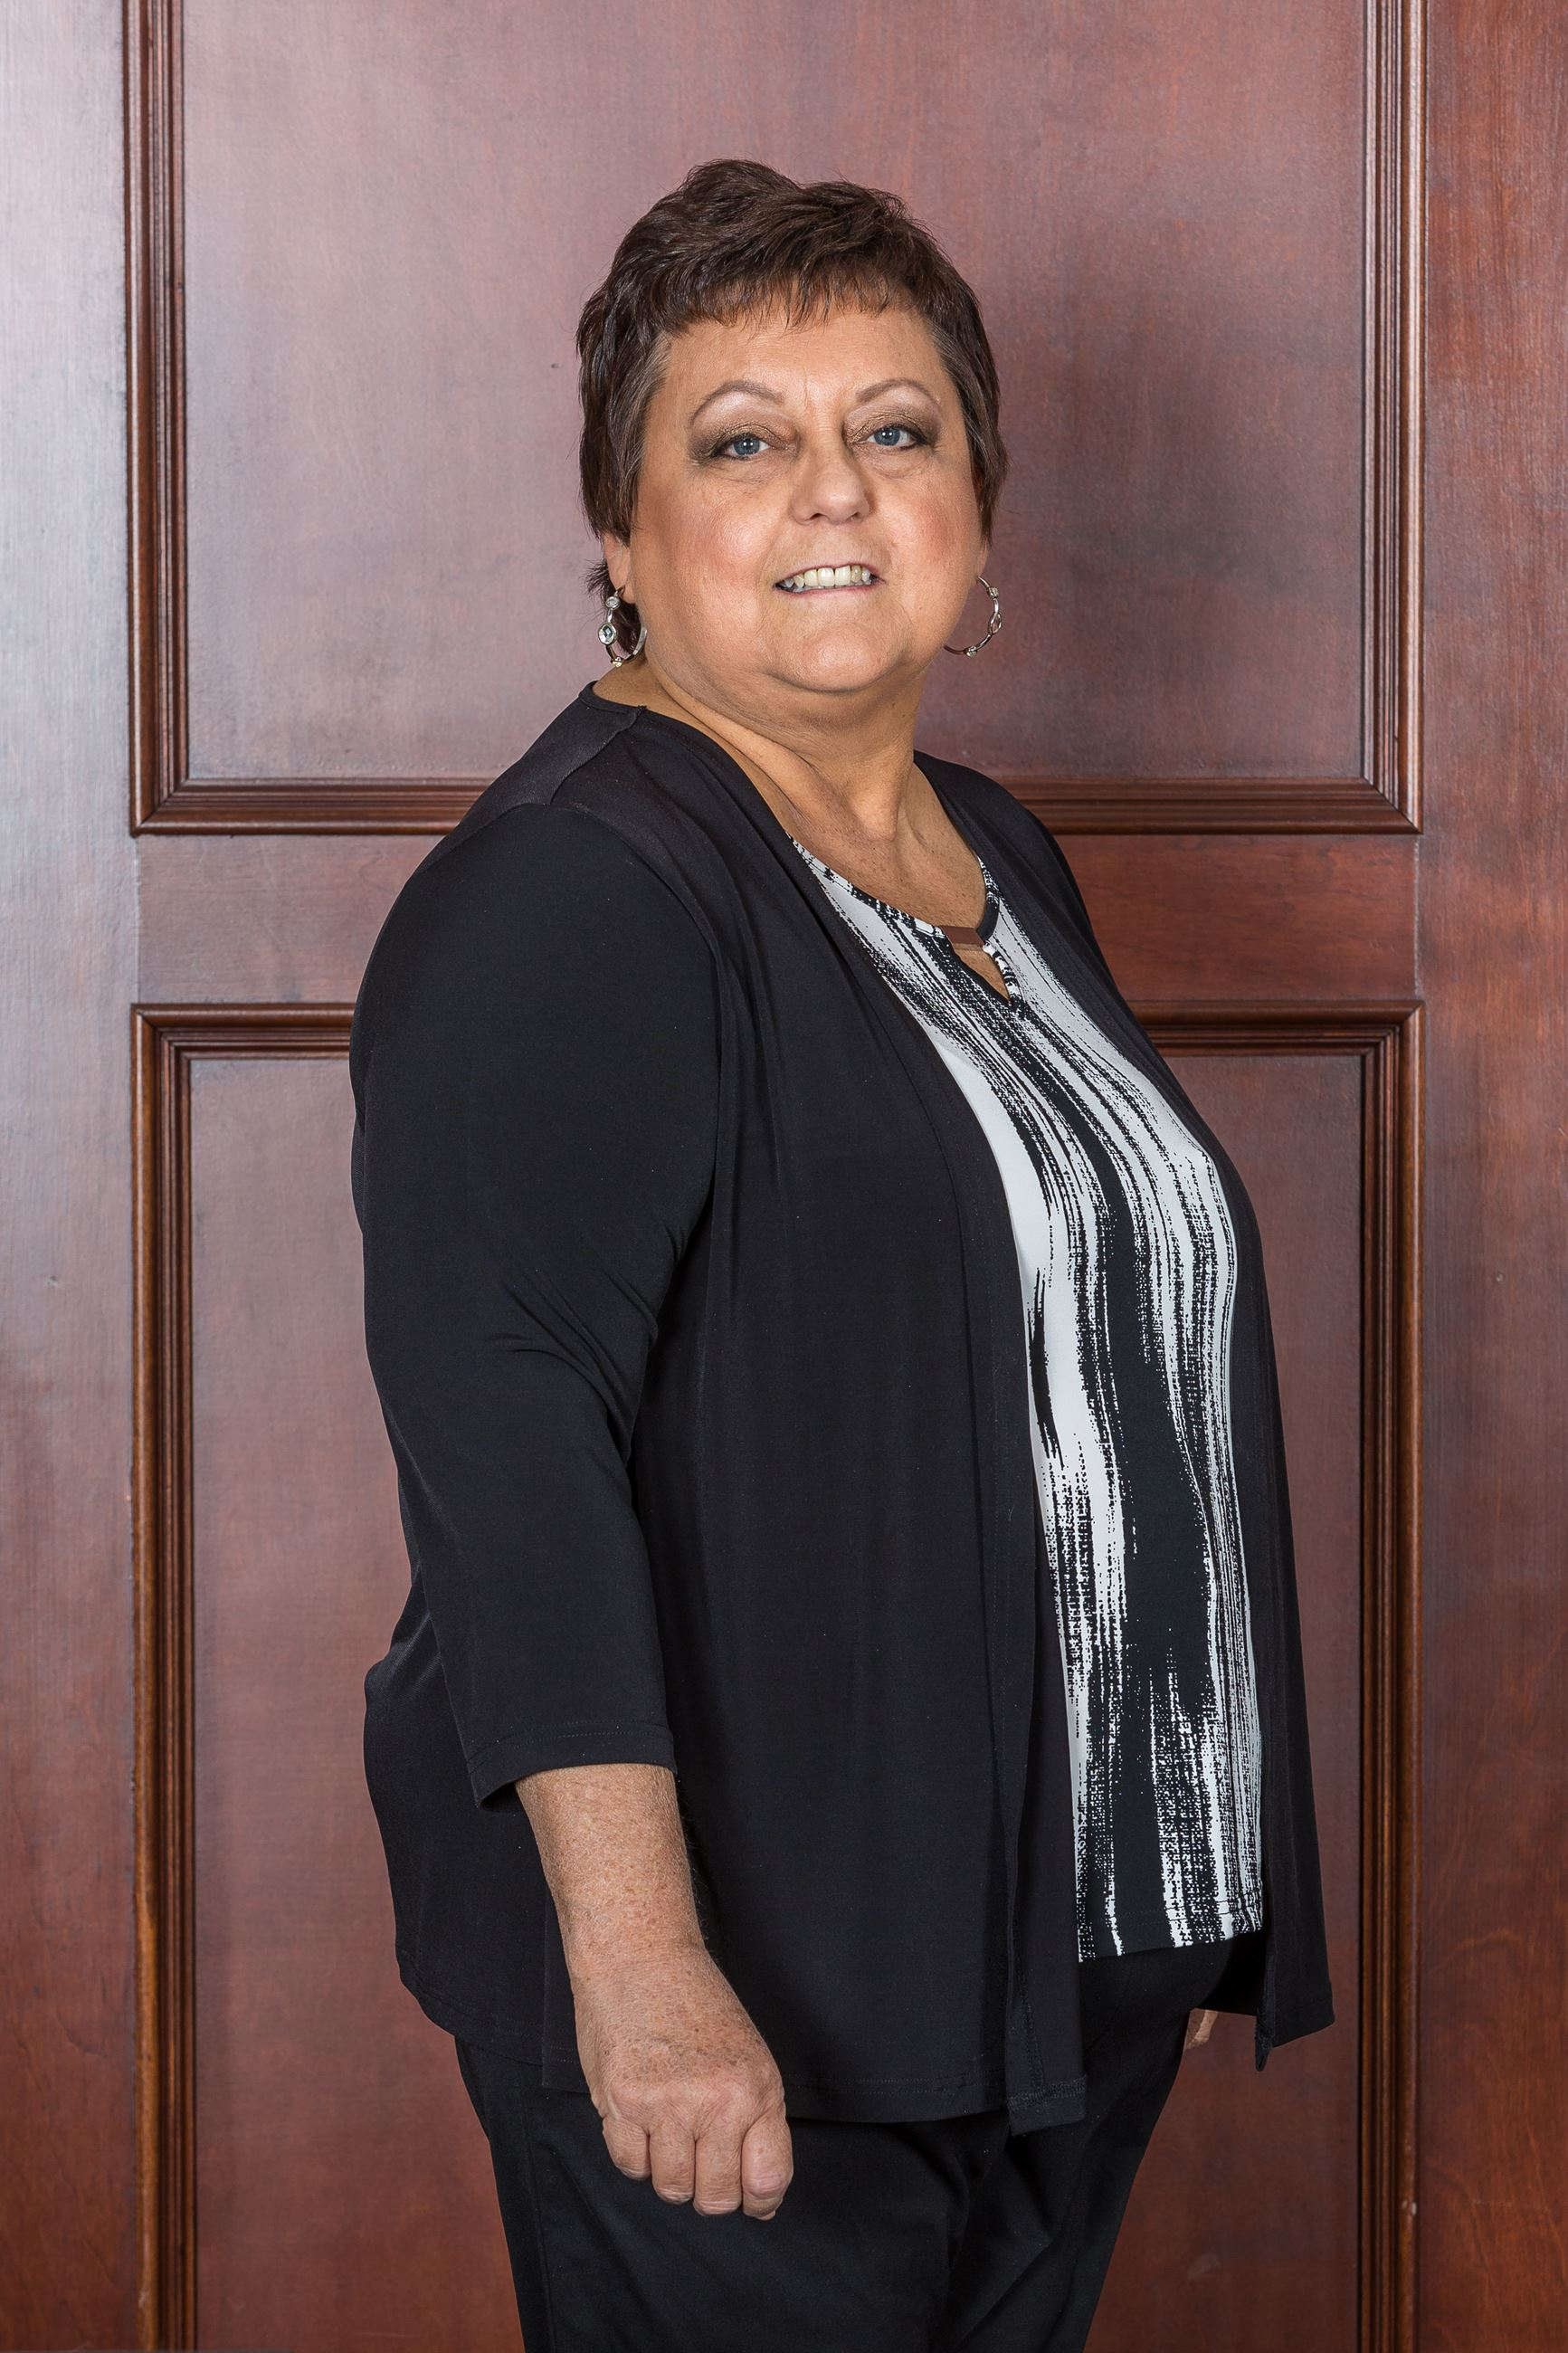 Picture of Village Trustee Beverly Hopper